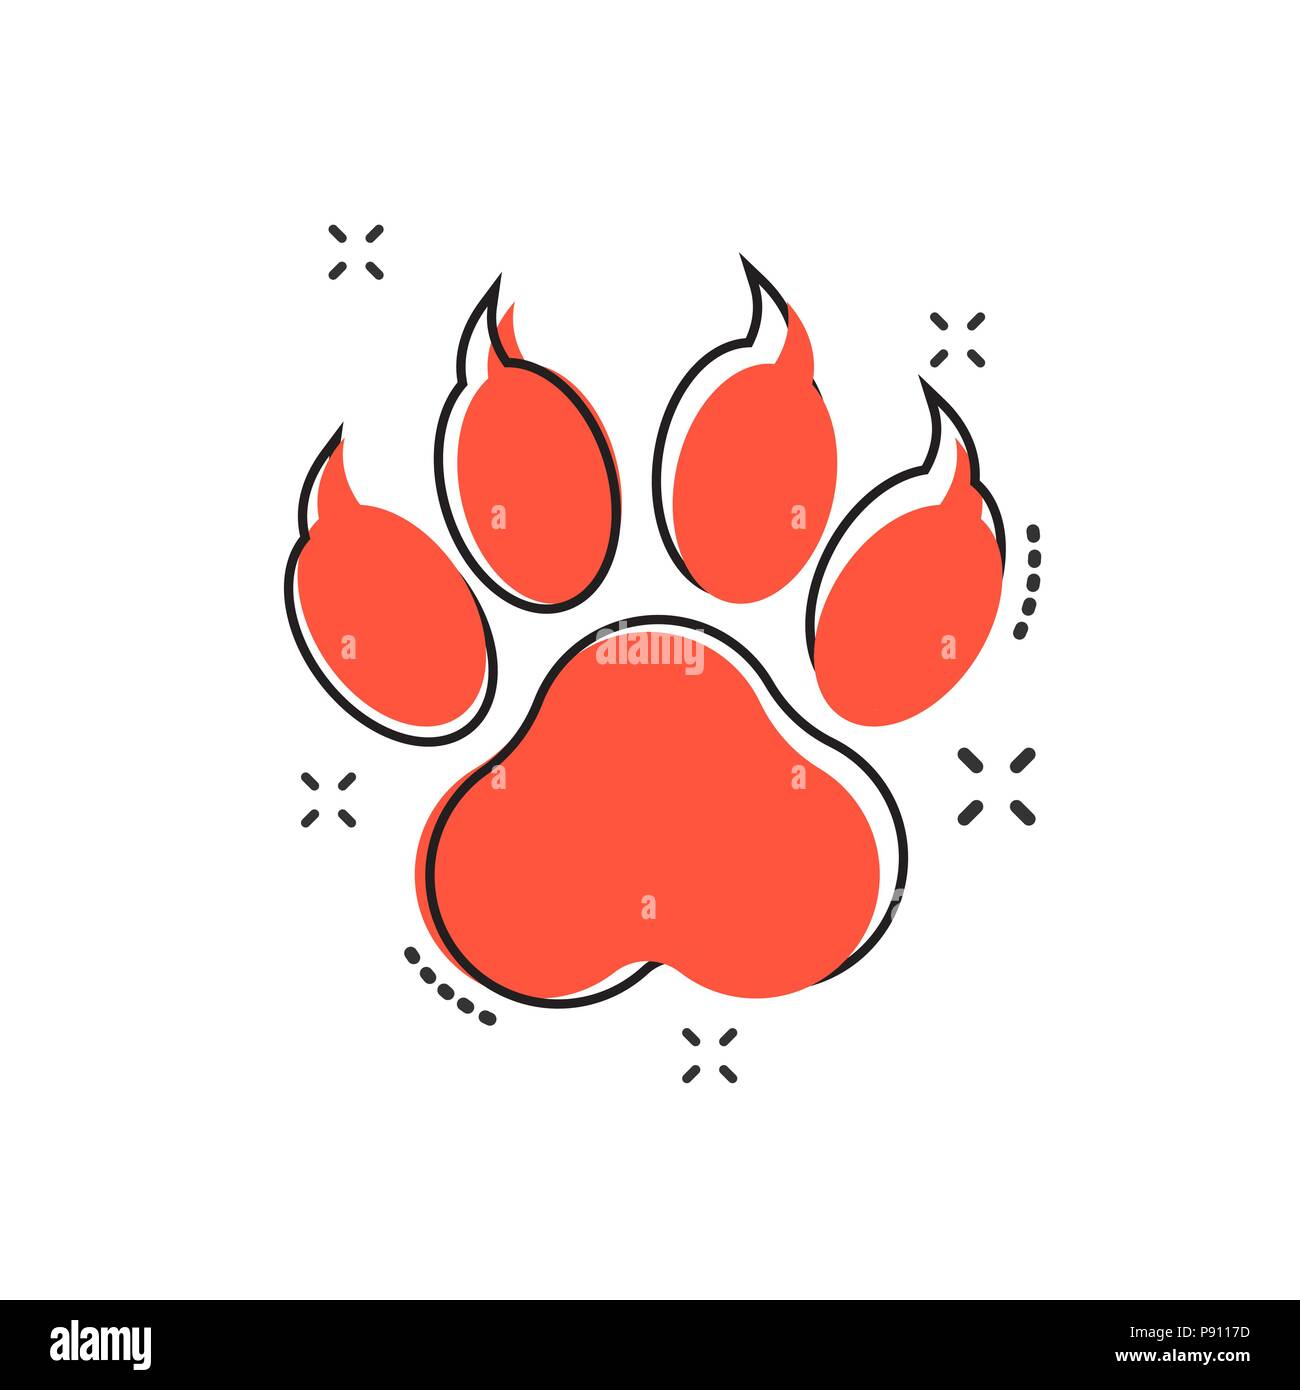 hight resolution of vector cartoon paw print icon in comic style dog cat bear paw sign illustration pictogram animal foot business splash effect concept